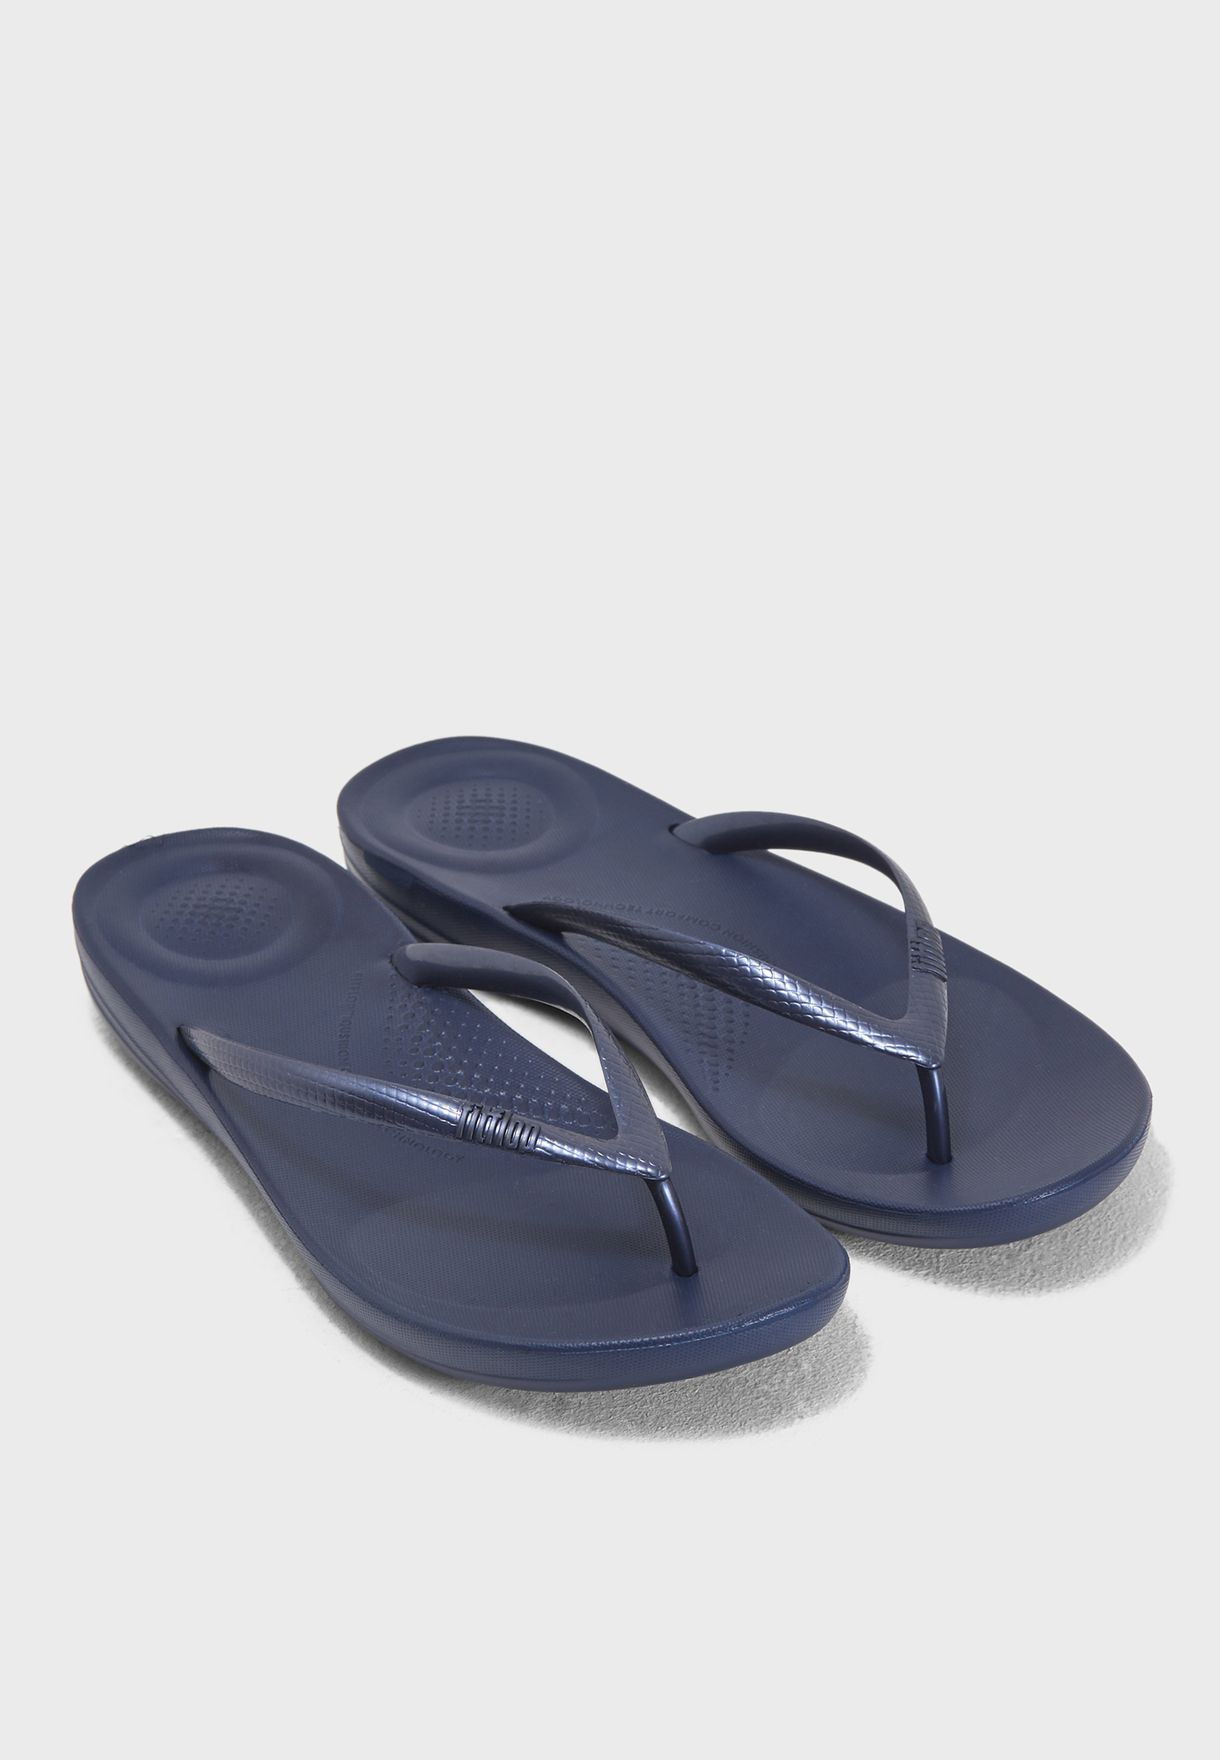 9ca6eaa78848 Shop Fitflop navy Iqushion Ergonomic Flip-Flops E54-399 for Women in ...